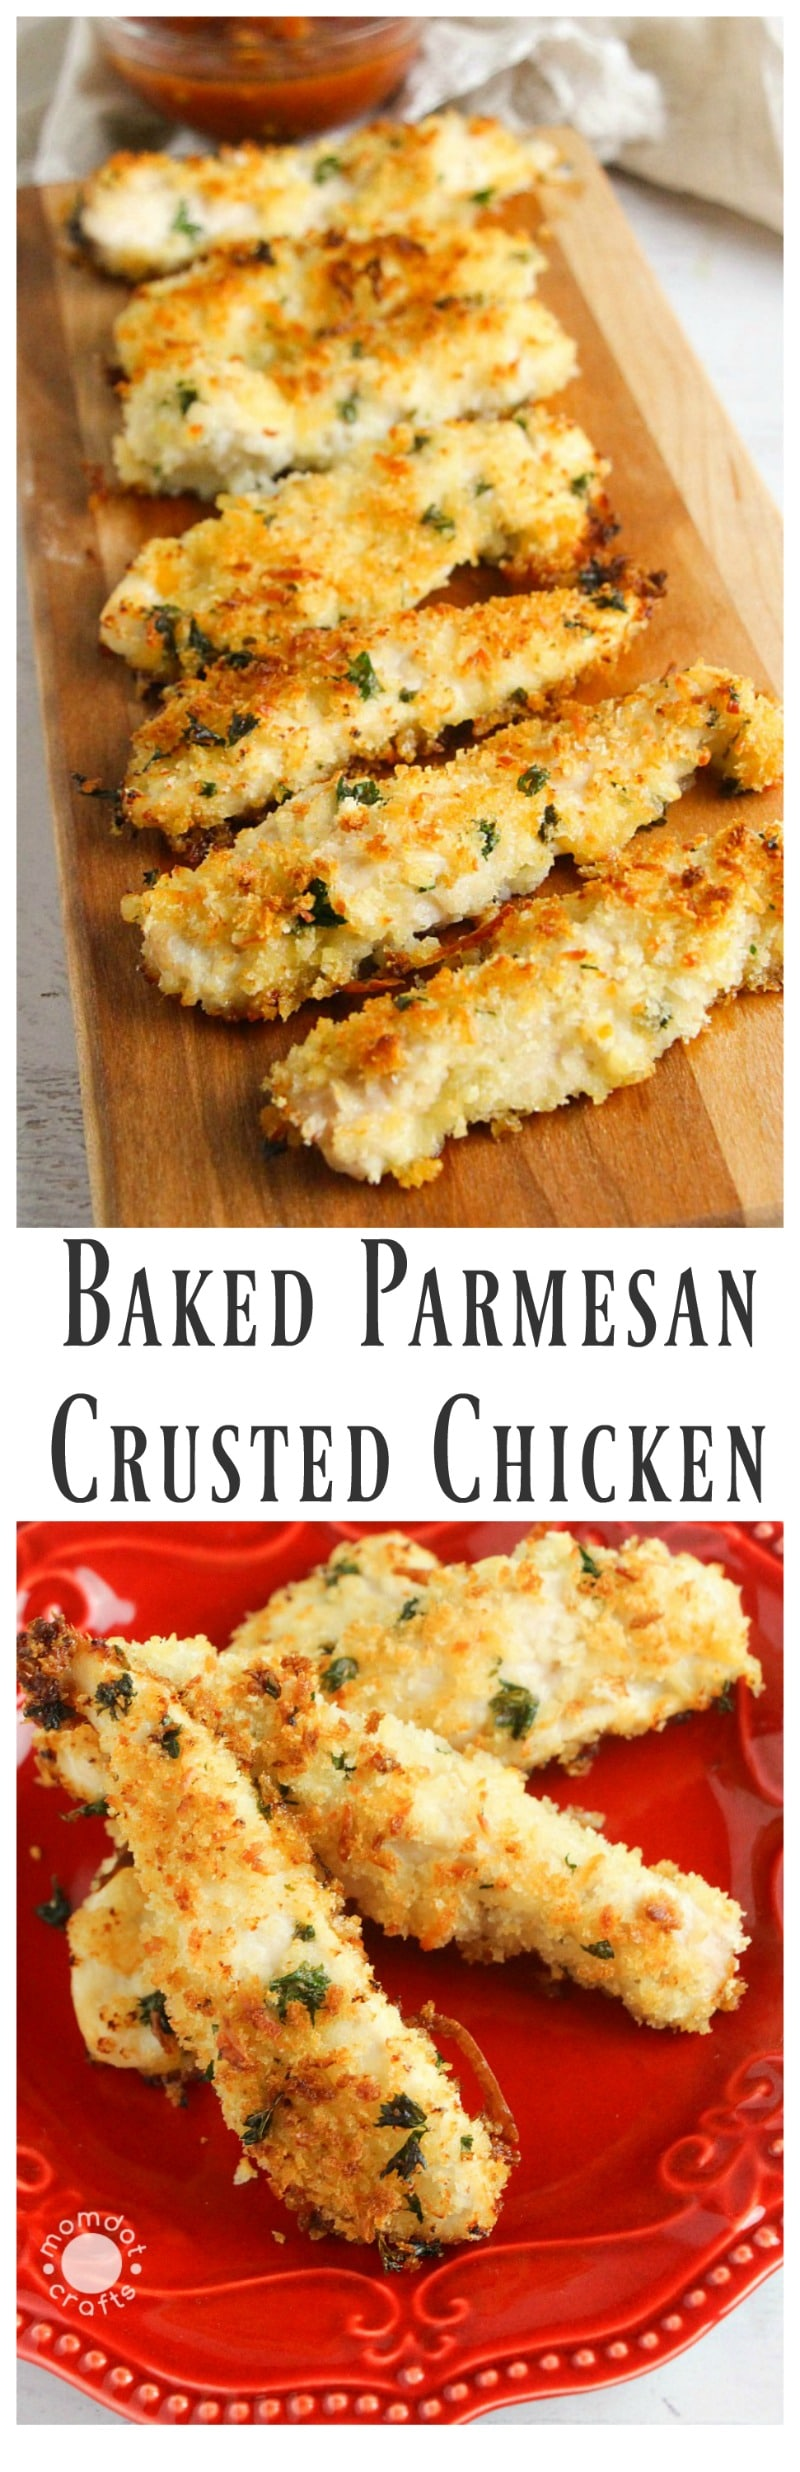 Parmesan Crusted Chicken Recipe Baked Parmesan Crusted Chicken Recipe  Momdot